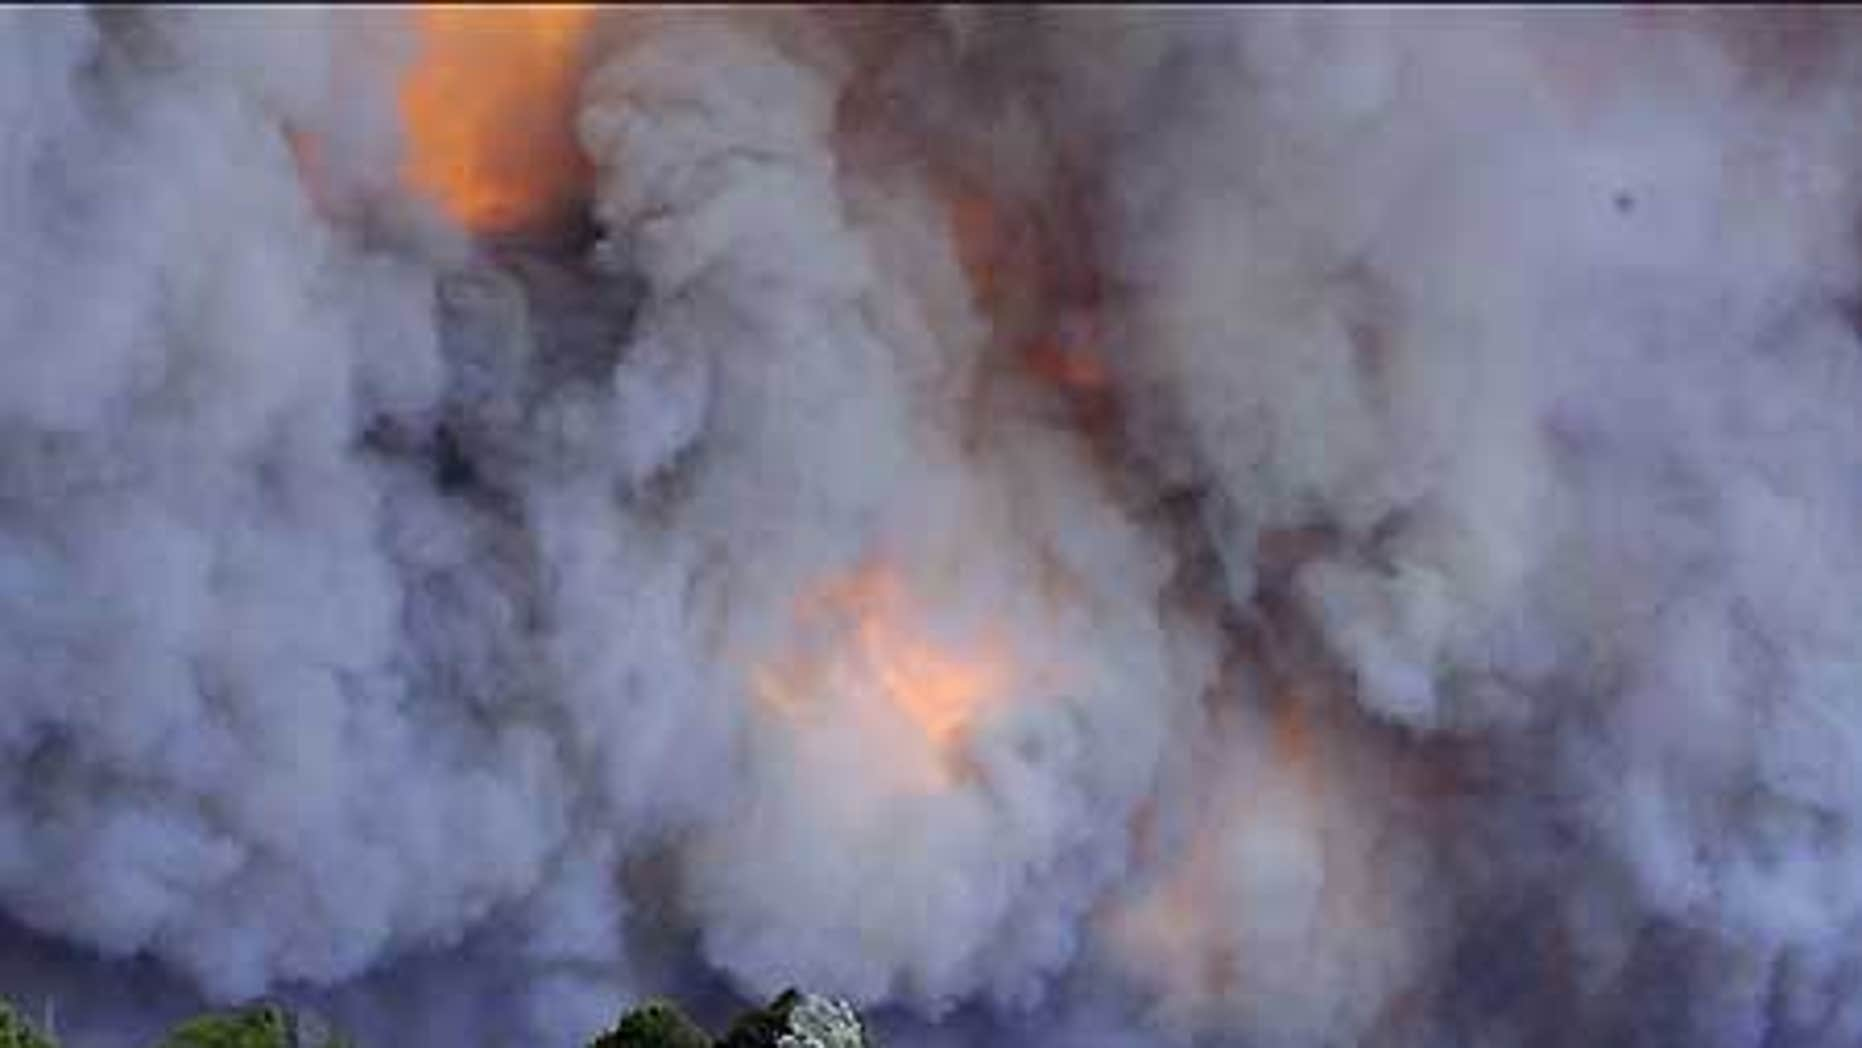 Feb. 7: An emergency vehicle races away from a blaze near a structure in the Gippsland region in Australia's Victoria state.